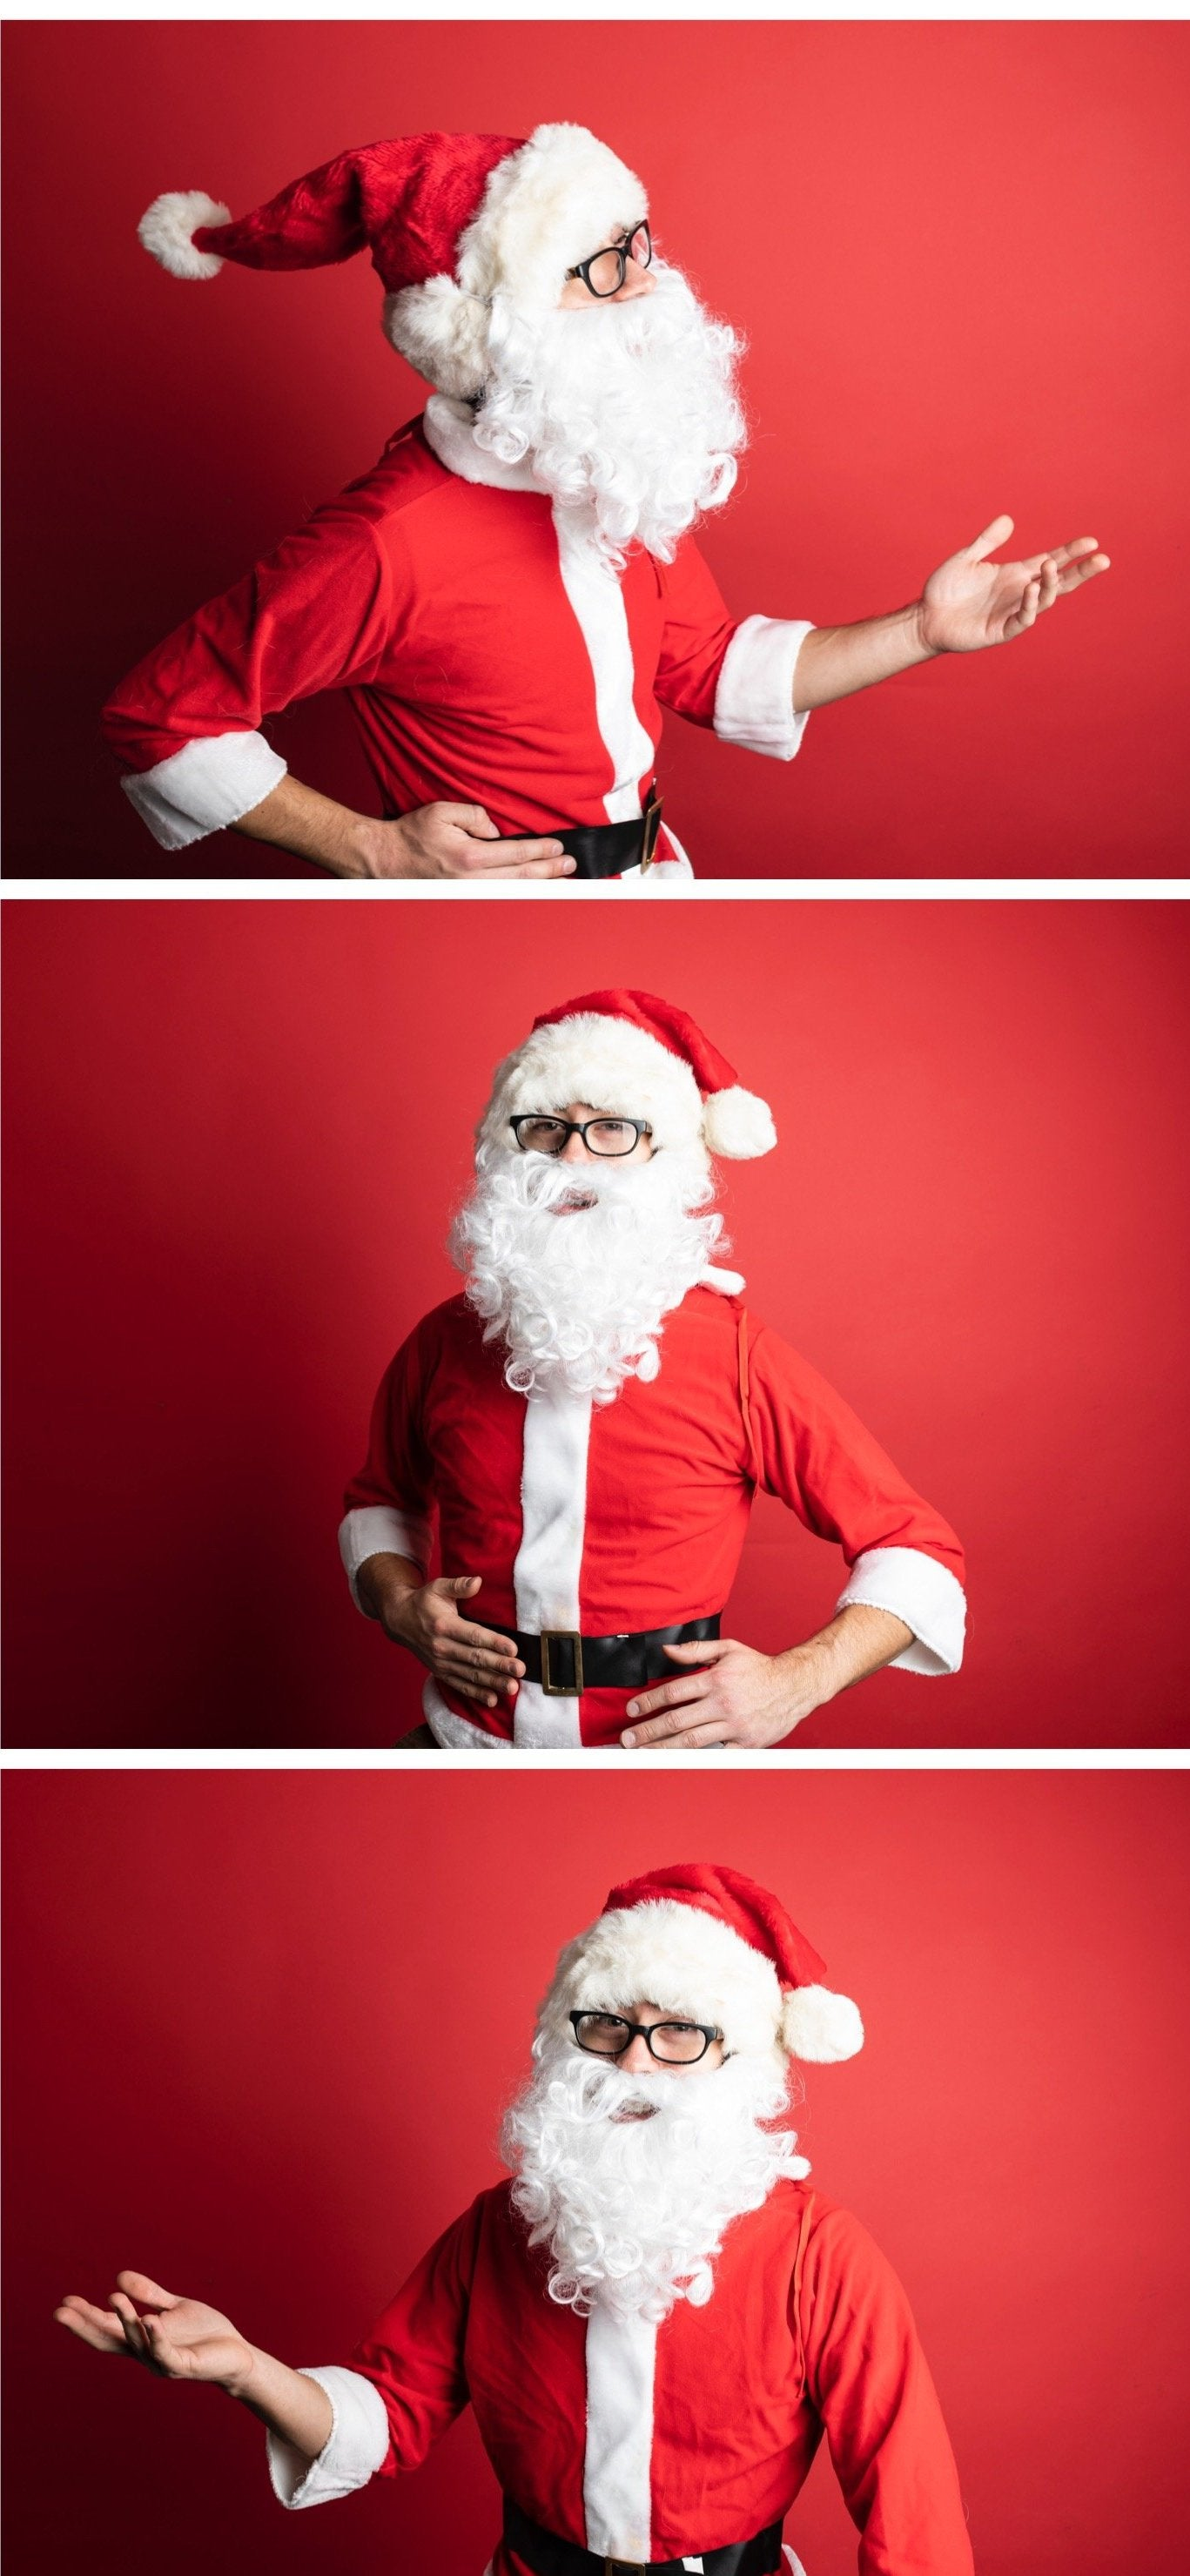 Happy Hour: SANTA | Dec 14 3:00-5:00 PM